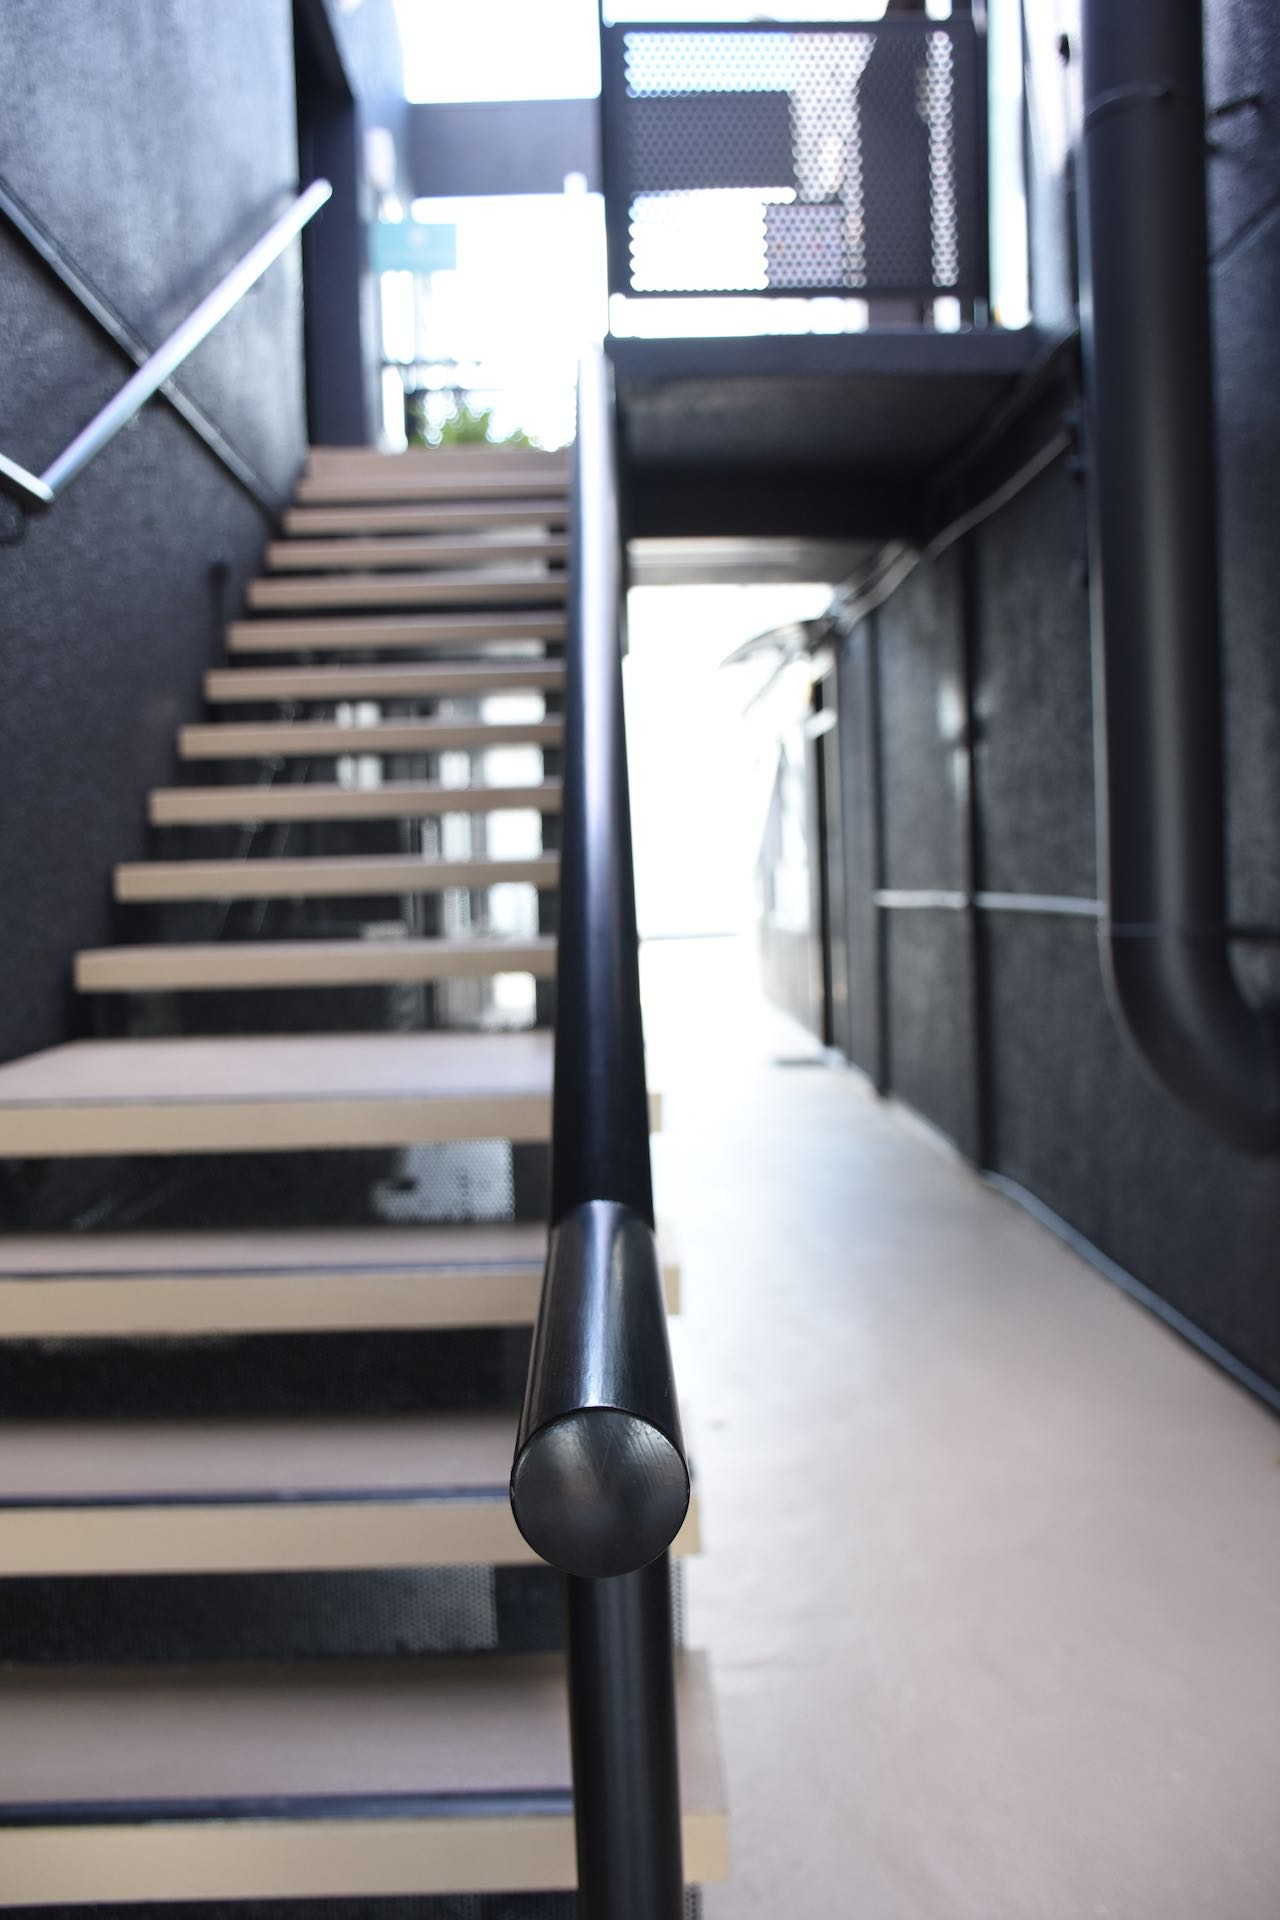 Steel handrail for stairs in Auckland commercial building.